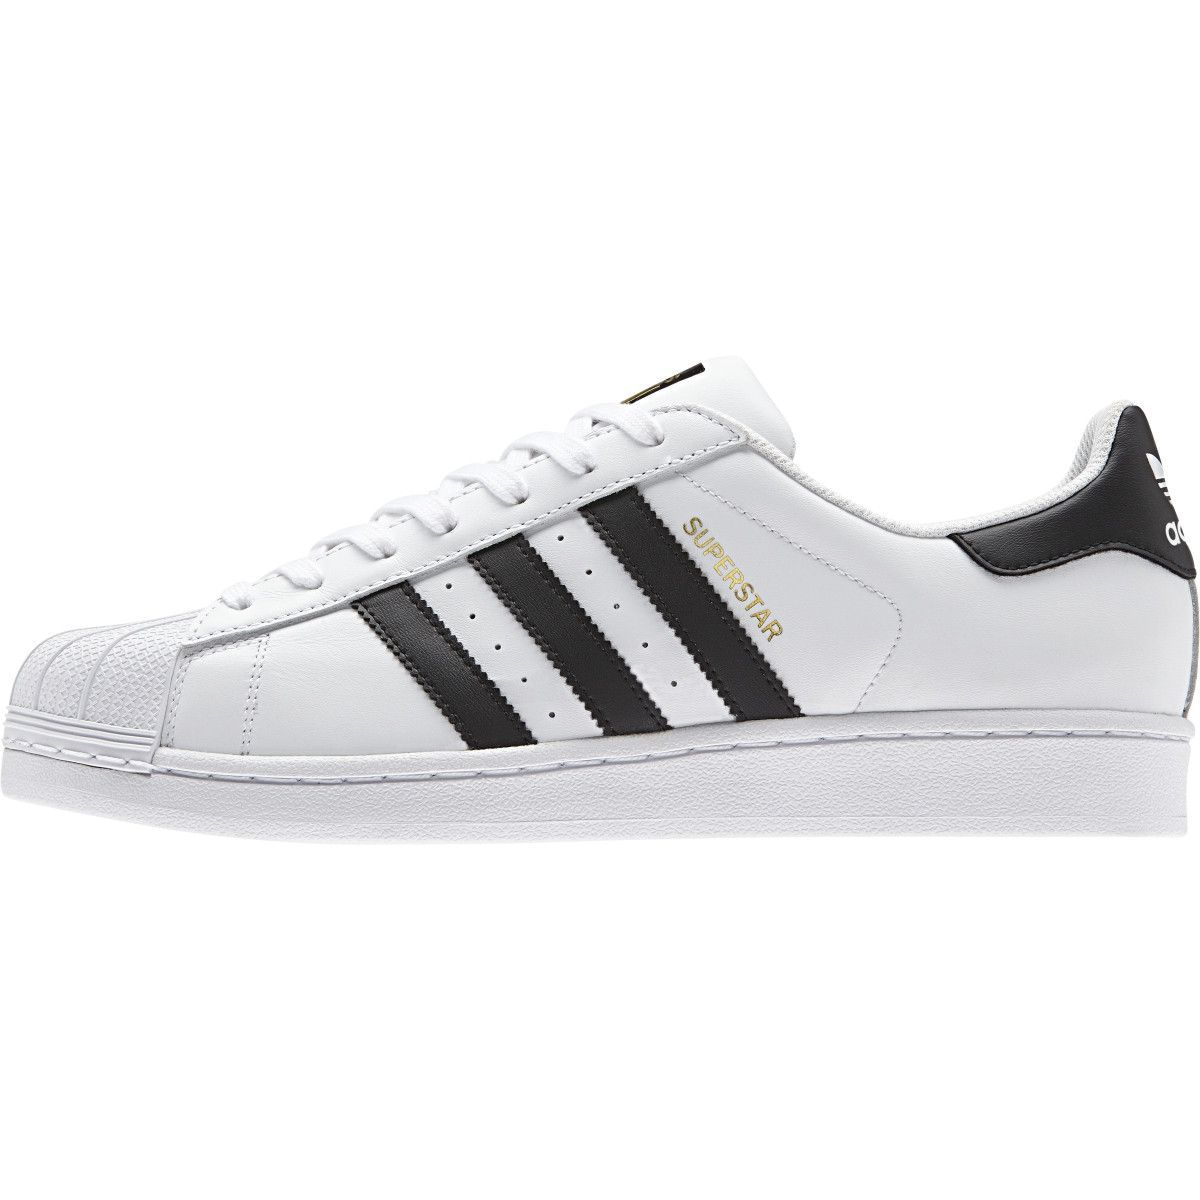 The adidas Superstar sneaker reigns supreme. The fan favorite launched in  1969 and quickly lived up to its name as NBA players laced into ... c818a1e654